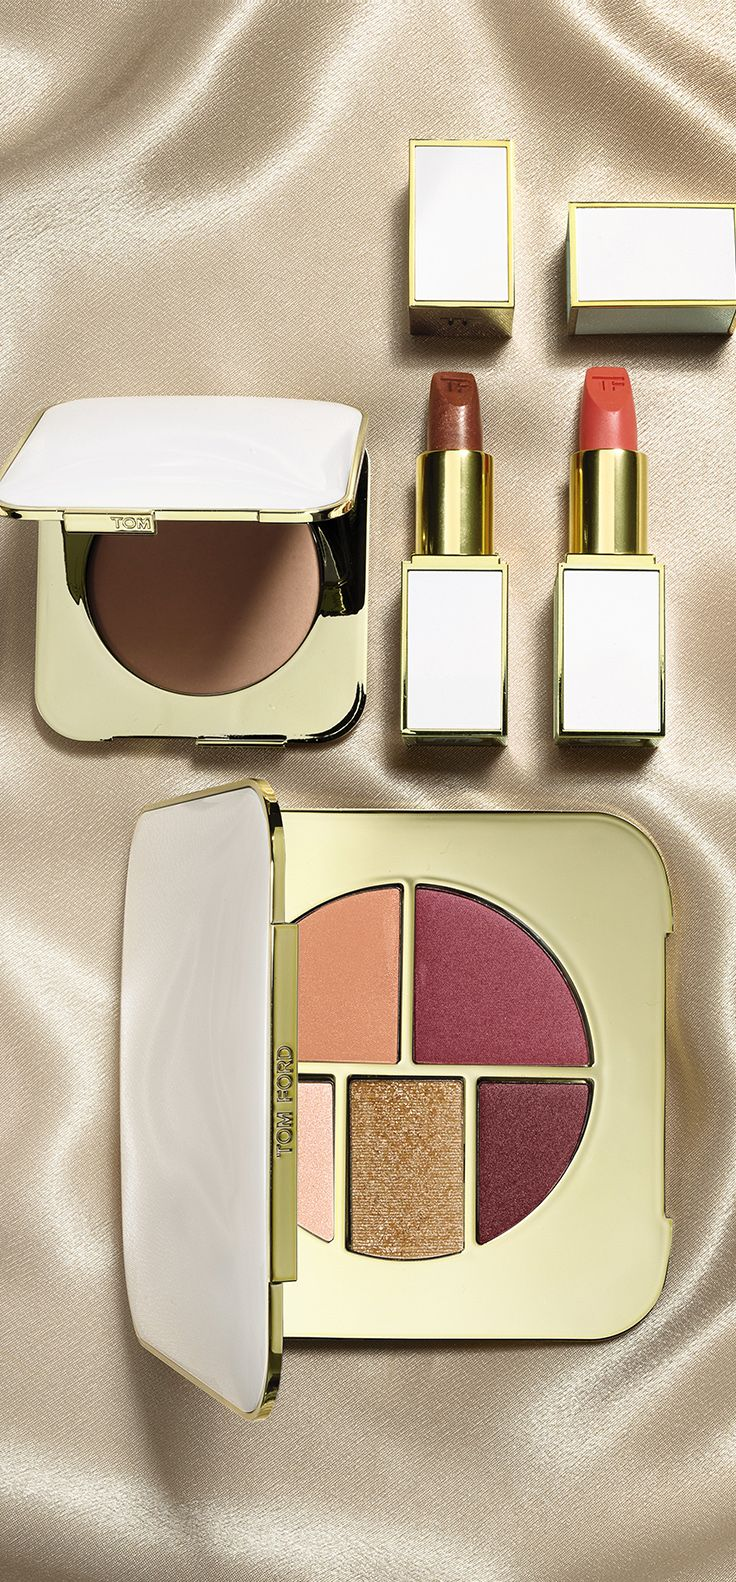 Discover the essential #SaksBeauty collection from #TomFord